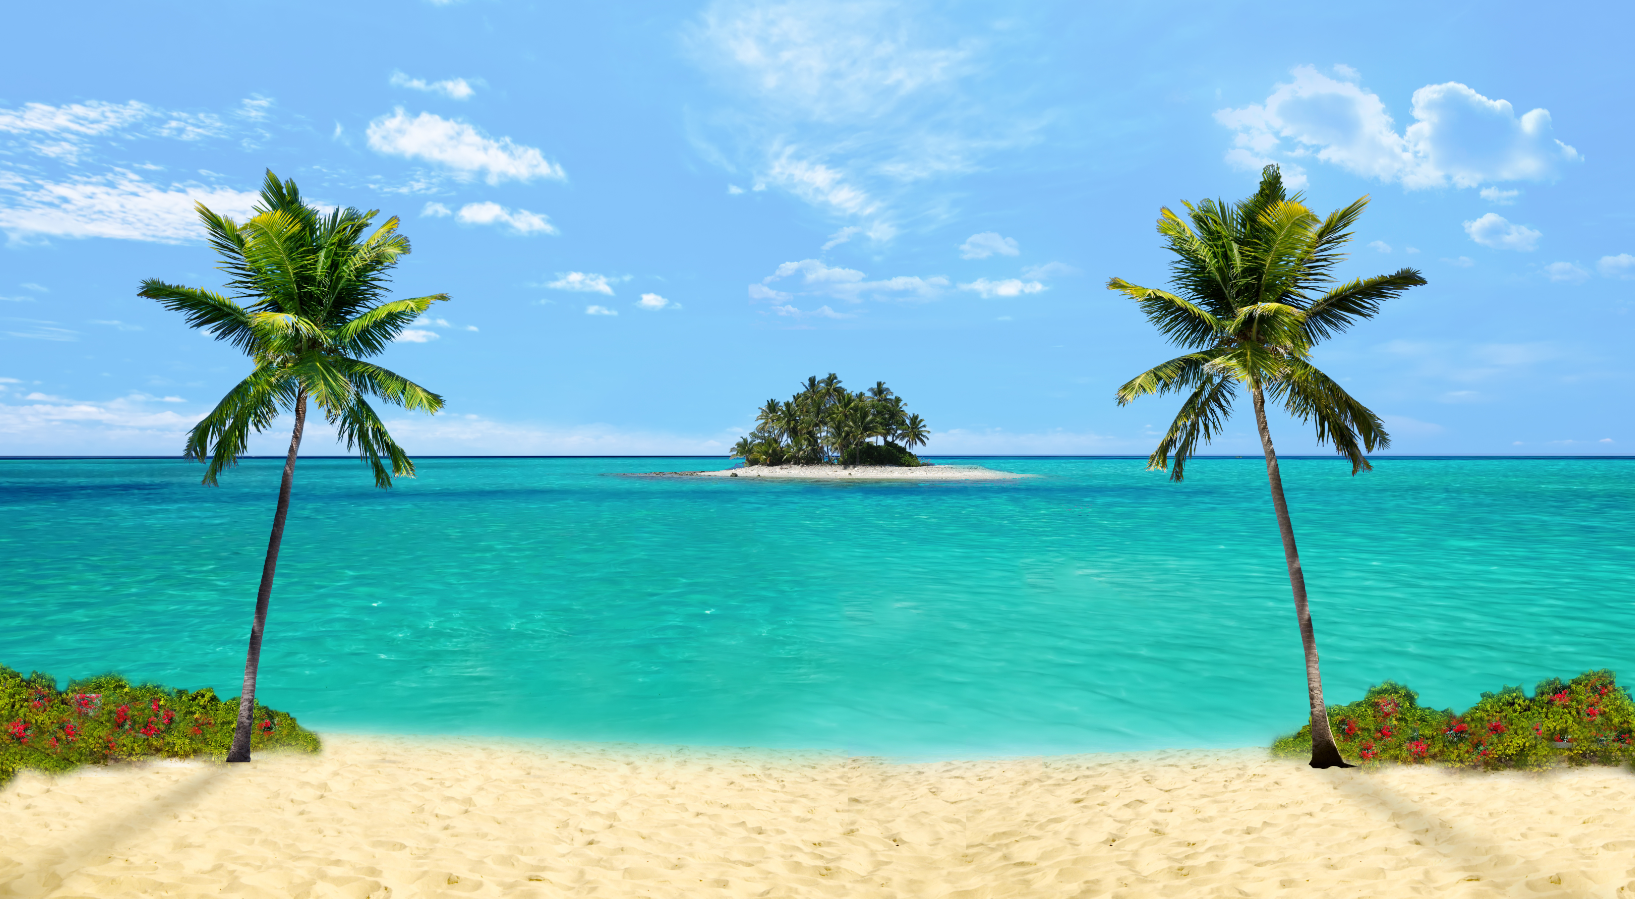 Hd Tropical Island Beach Paradise Wallpapers And Backgrounds: Tropical Paradise--Beach Parties, Hawaiian Luaus